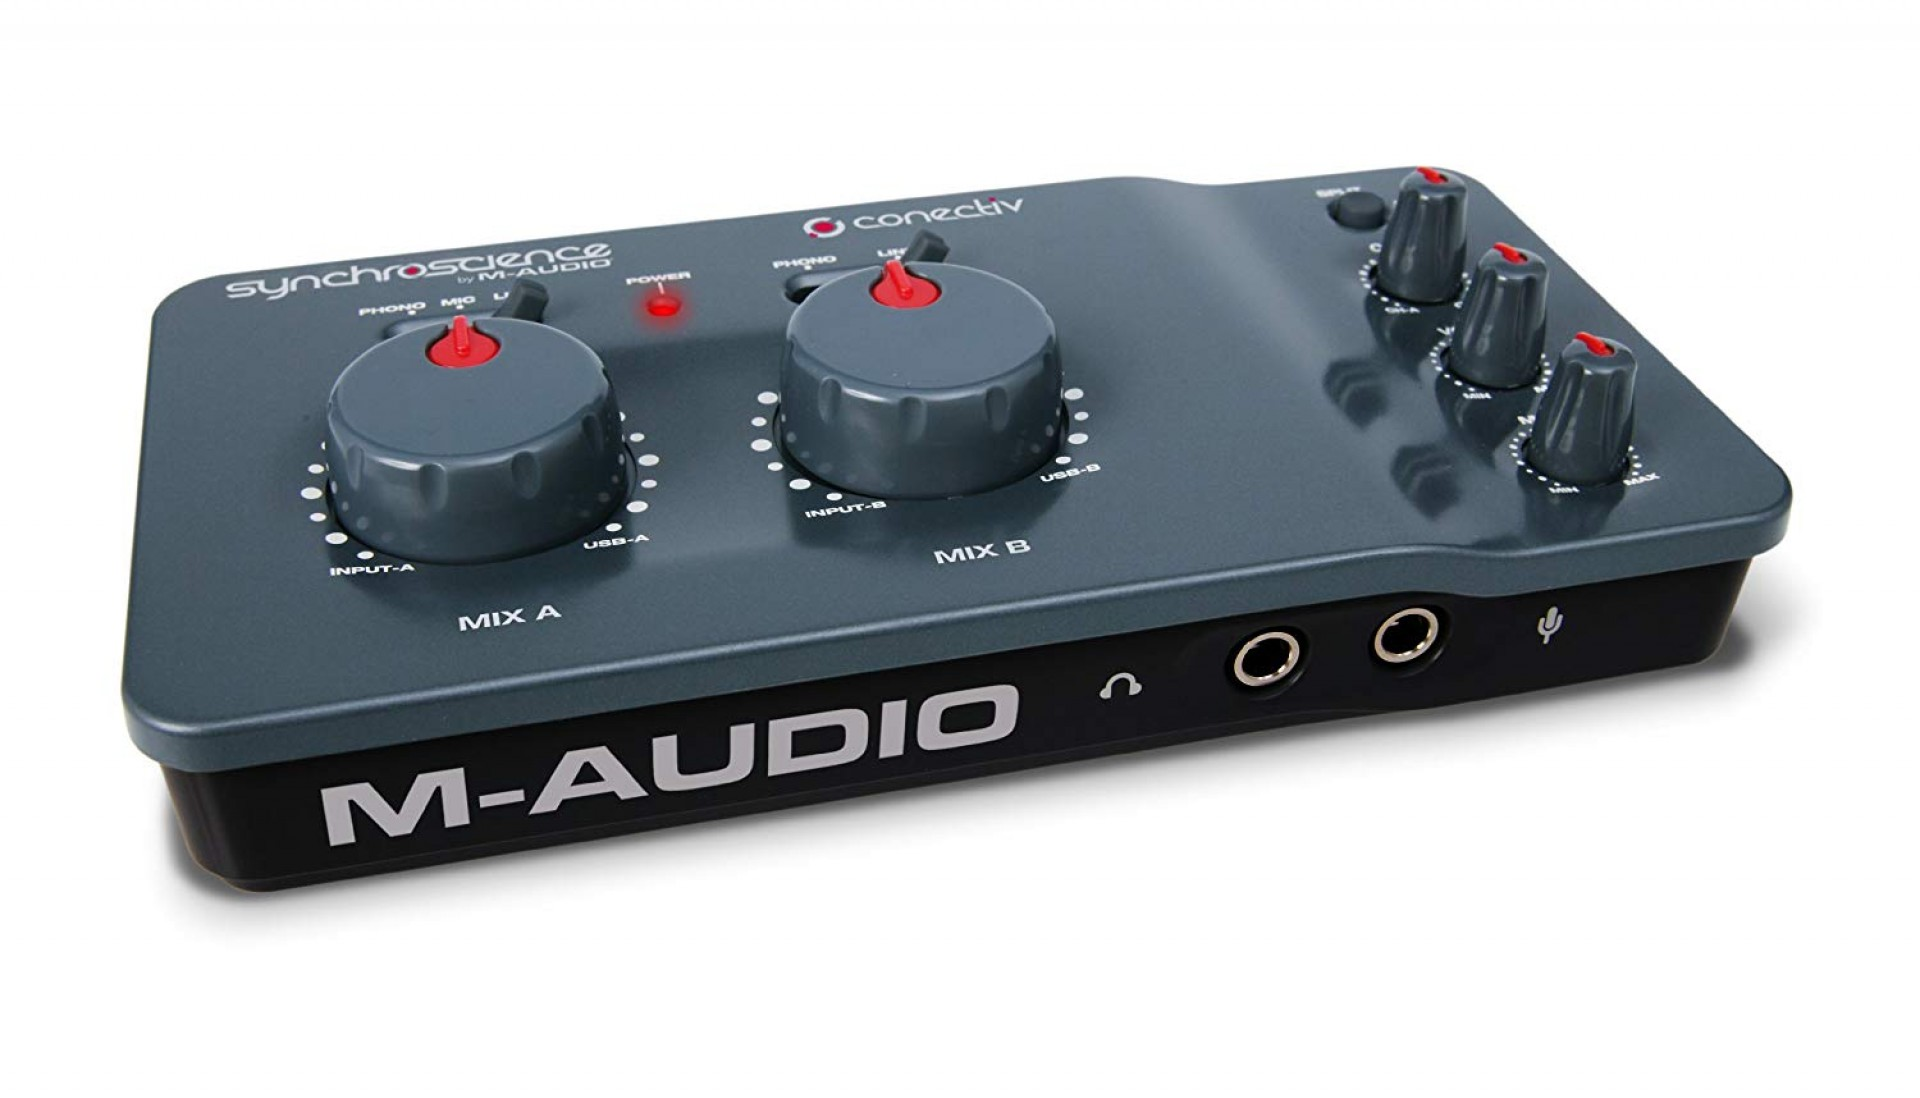 M-AUDIO Torq Conectiv with Vinyl